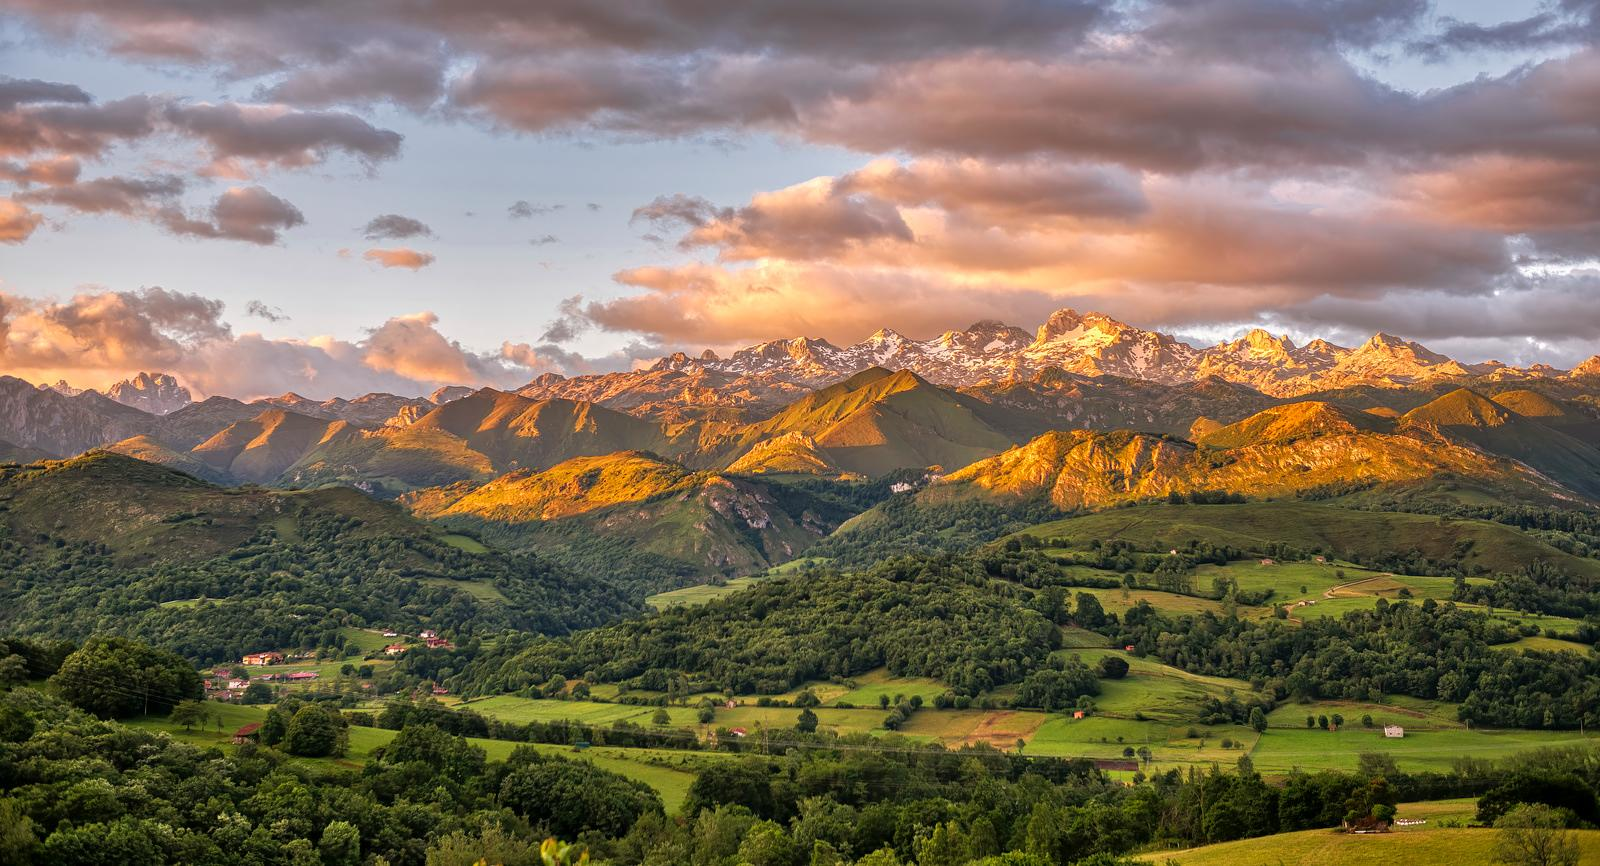 Southern Range of the Picos de Europa mountains, Spain